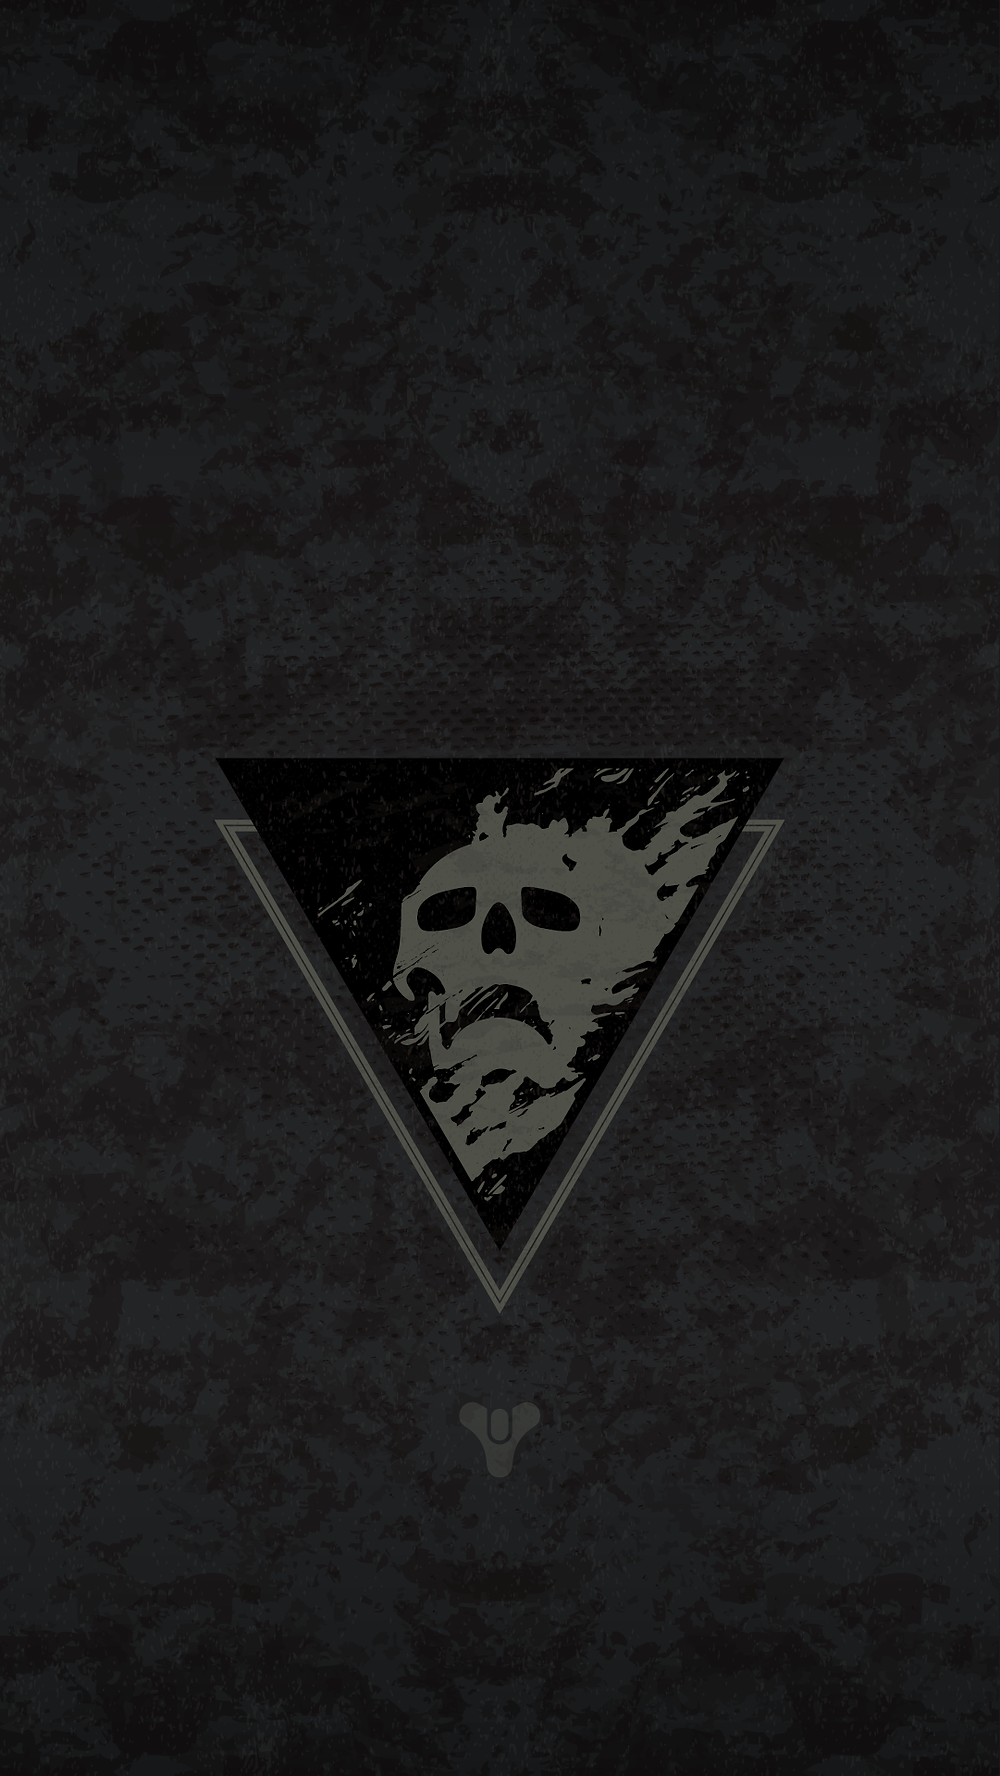 •DARKNESS_ZONE_ICON_-_1080x1920.png